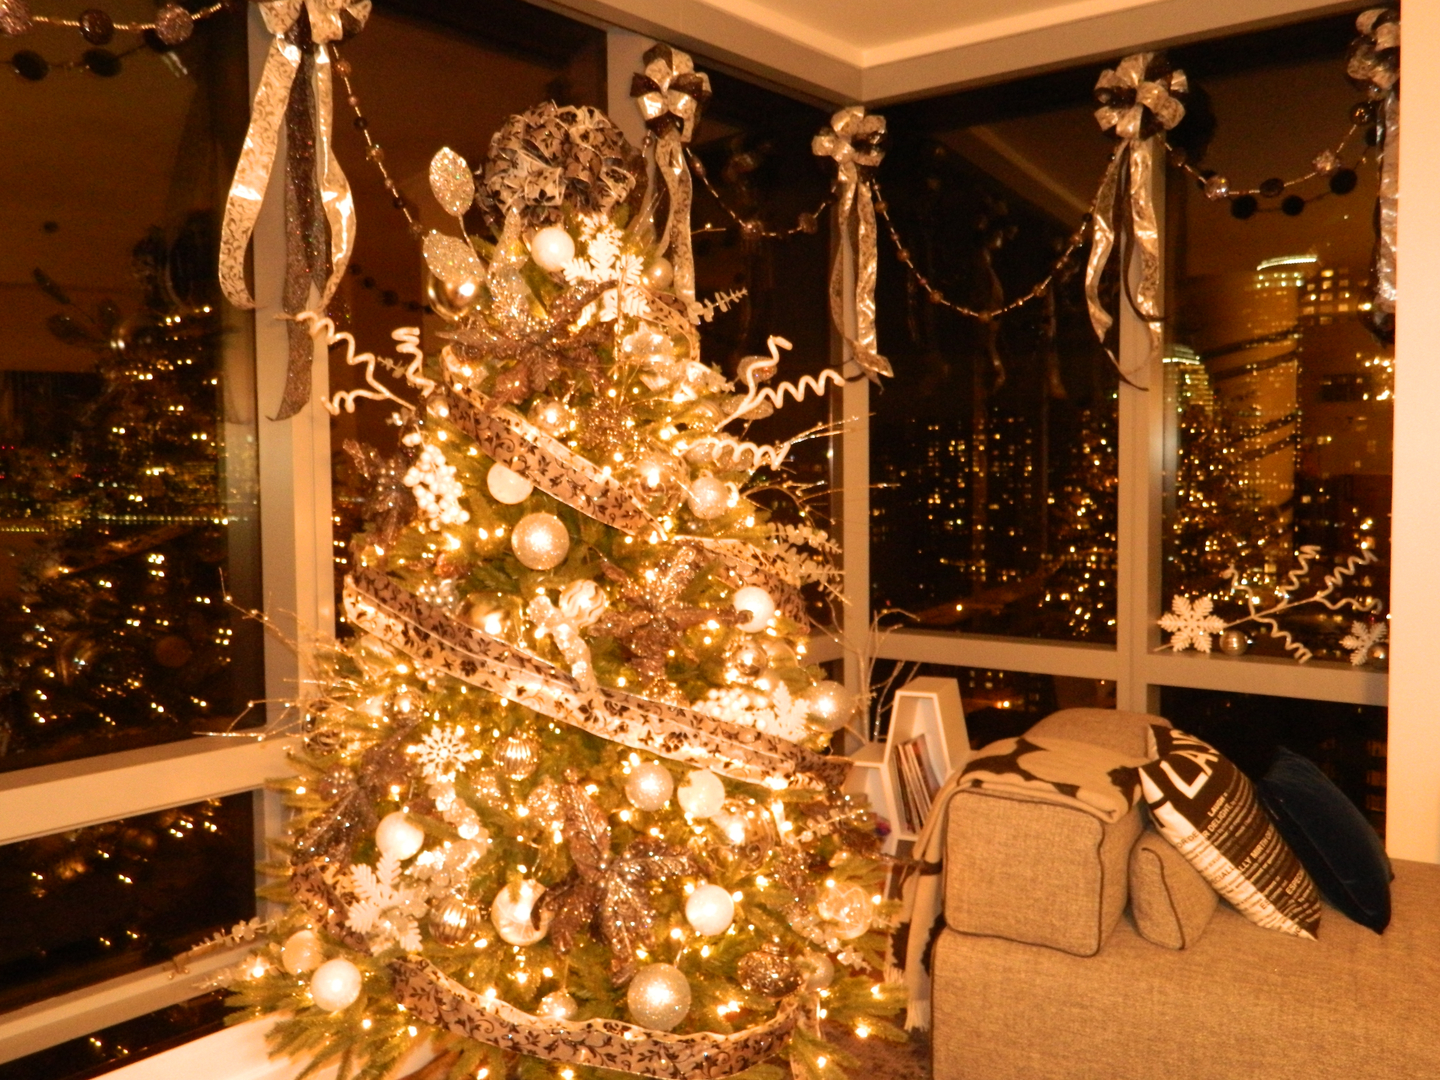 denise piccolo professional christmas decorating and event planning nyc